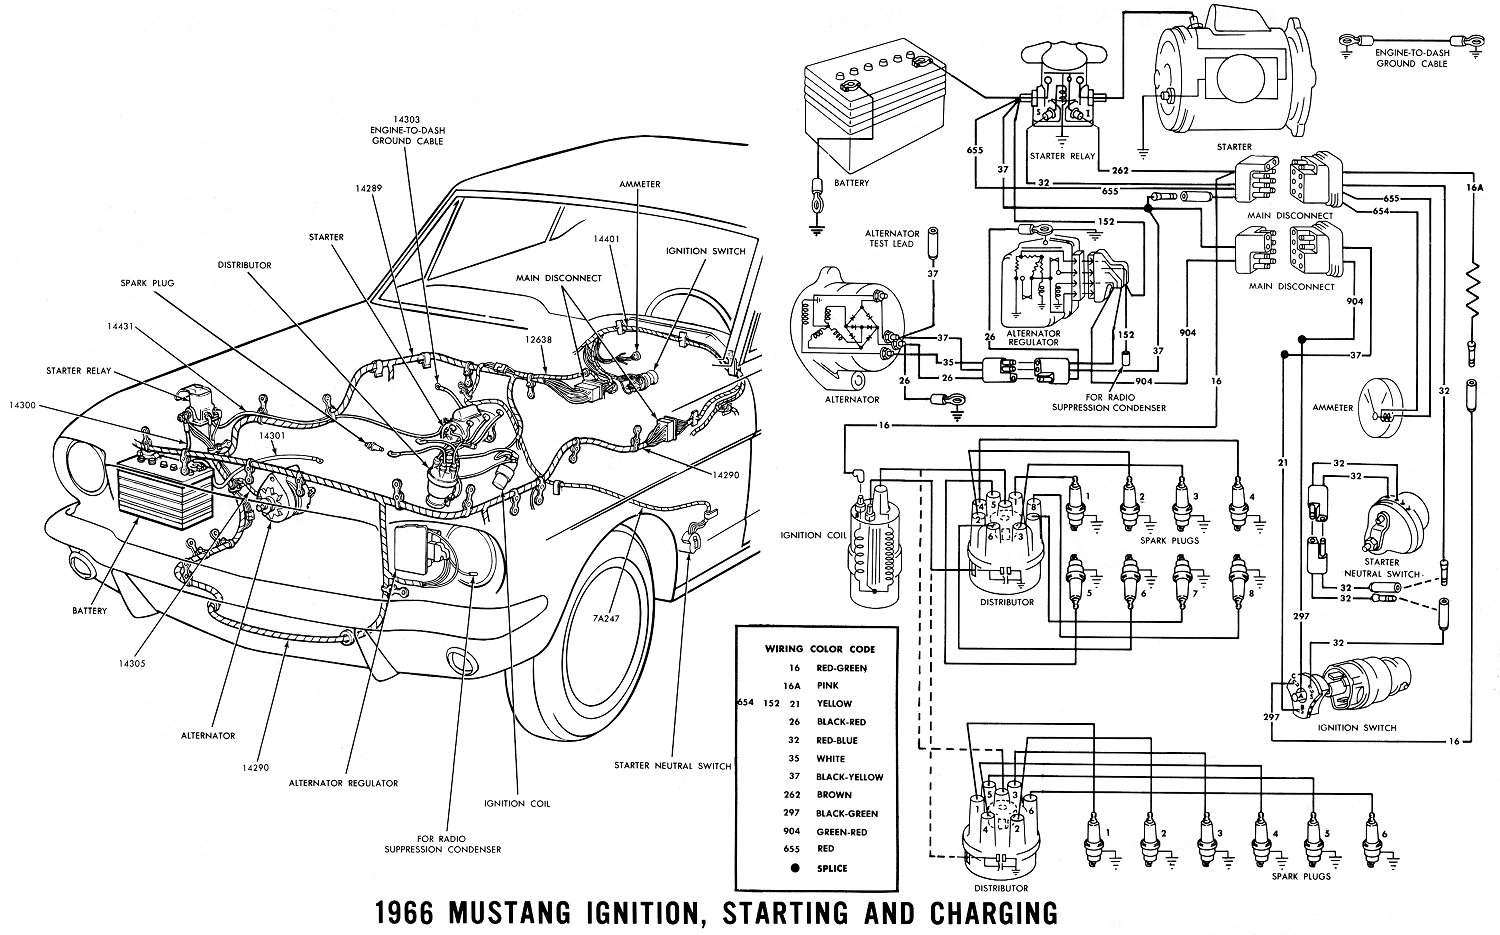 66ignit 1966 mustang wiring diagrams average joe restoration ignition wiring diagram at panicattacktreatment.co